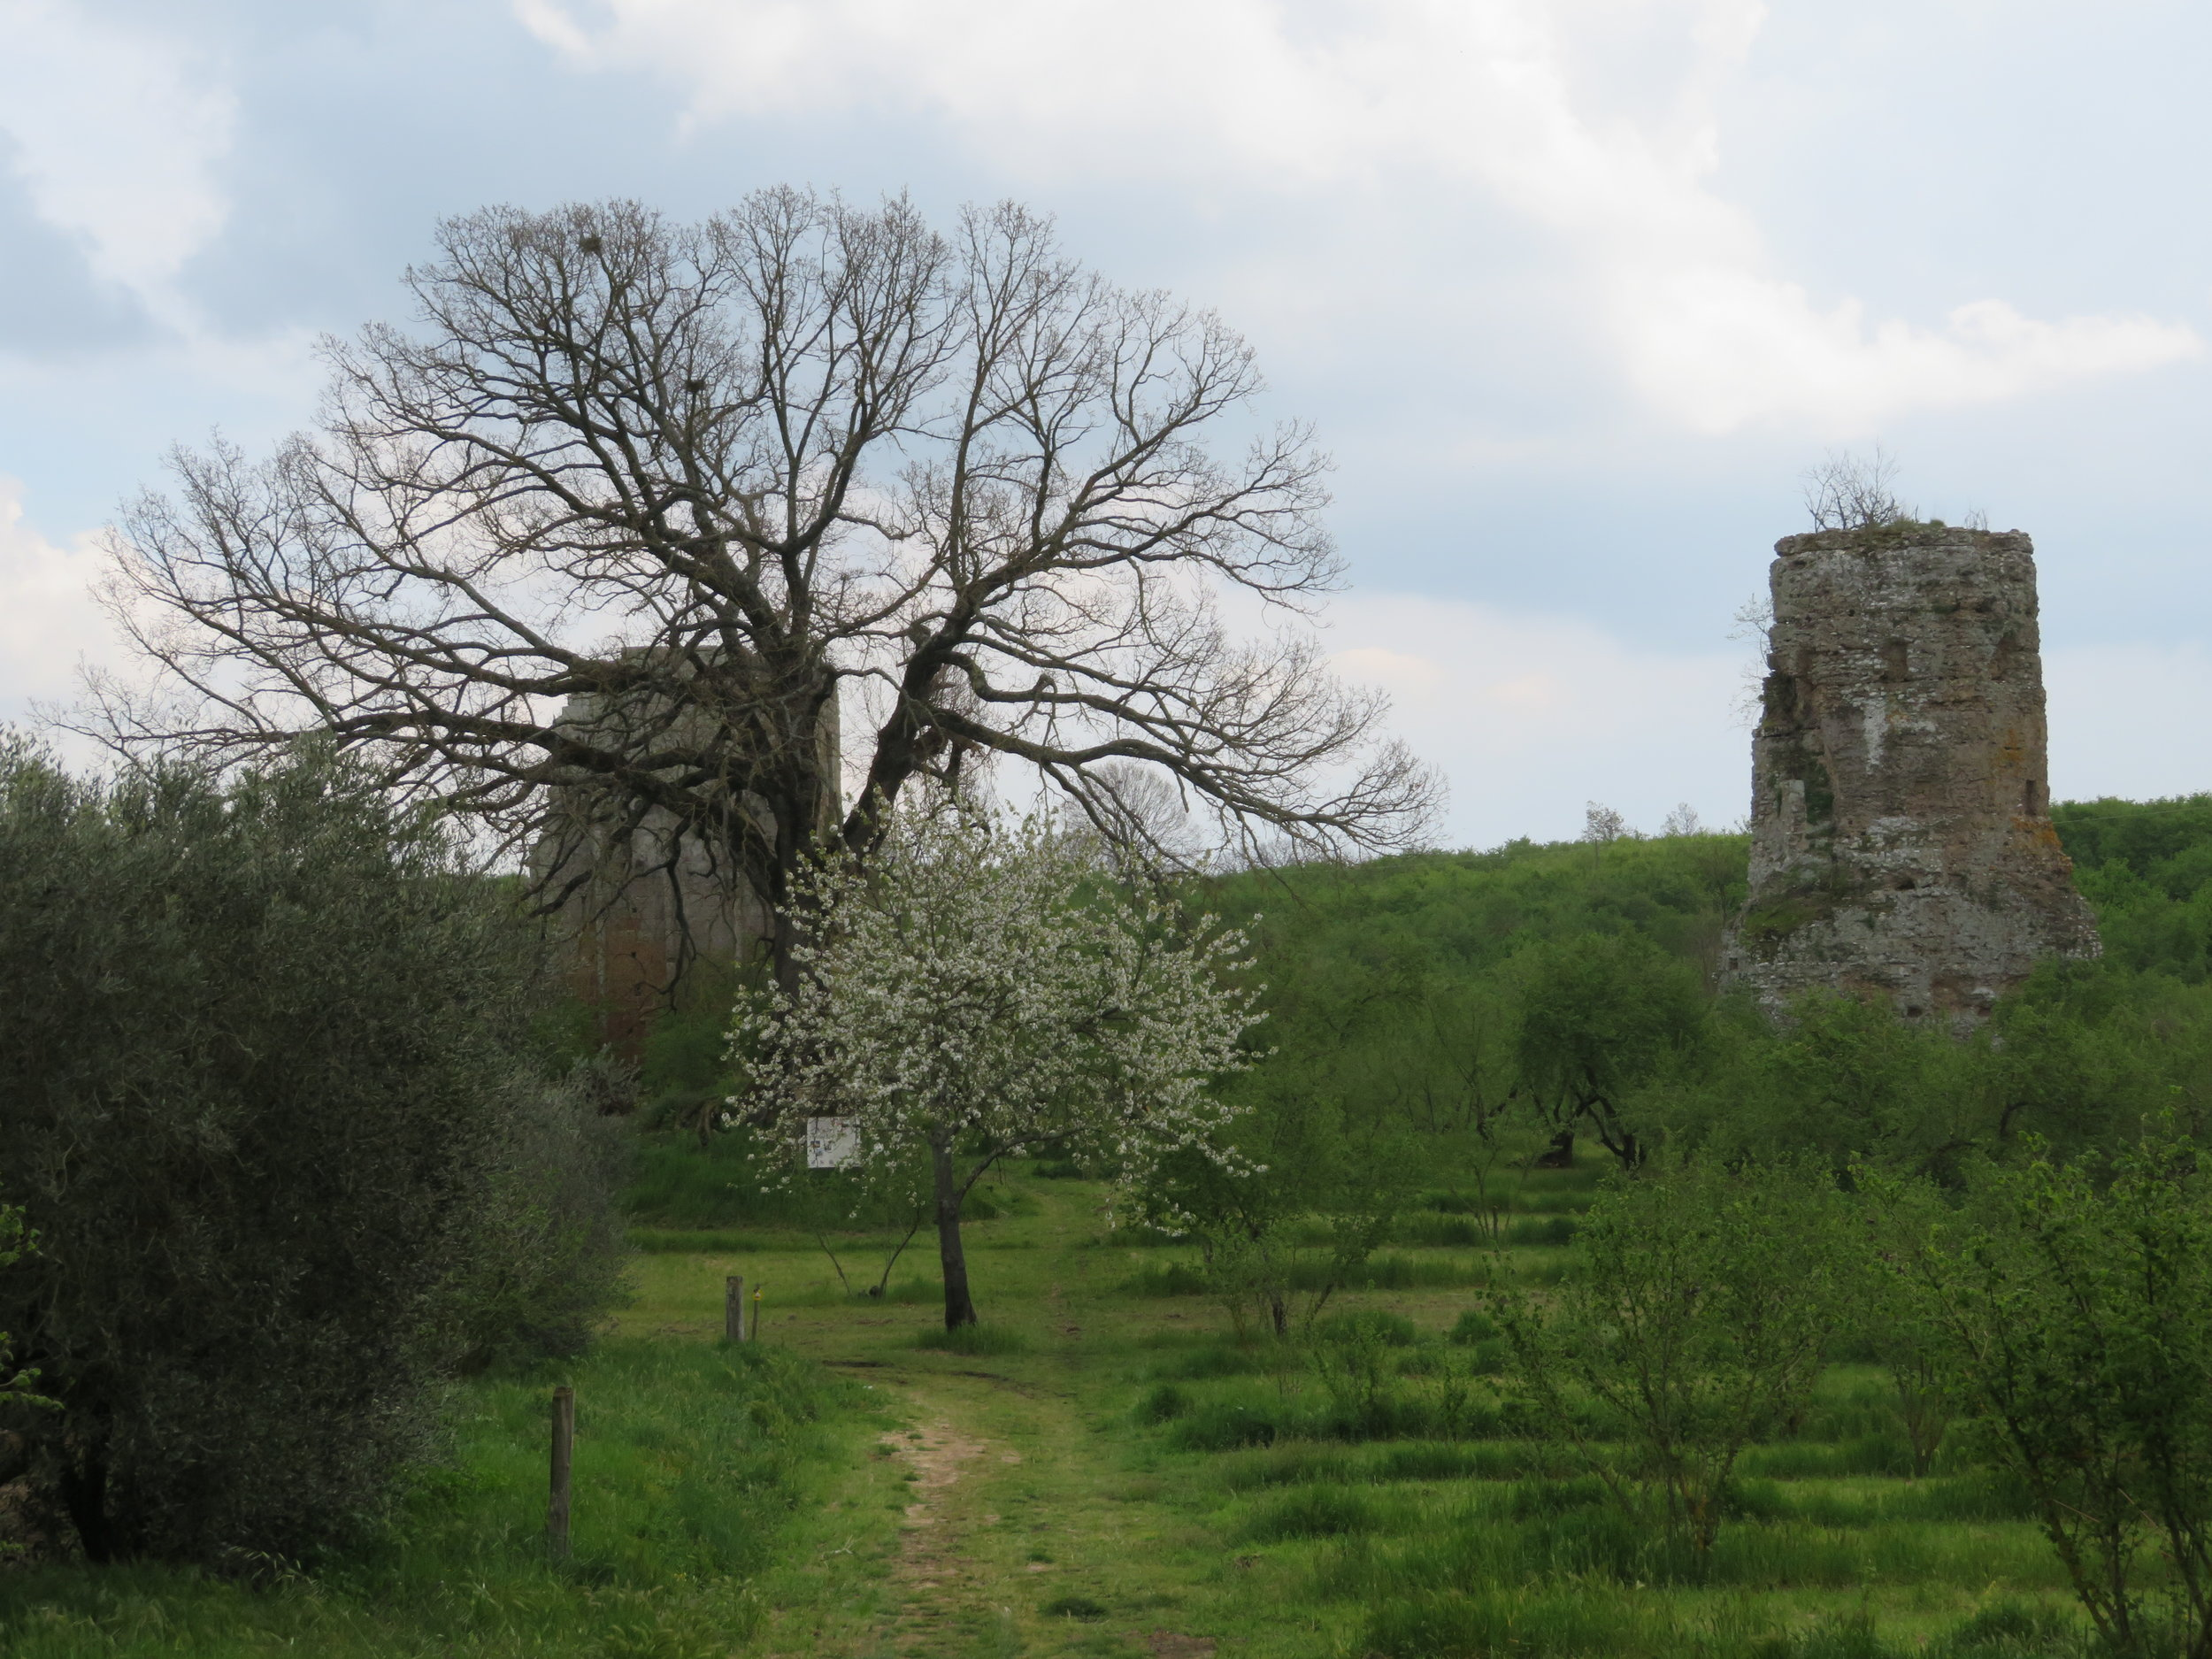 We passed funerary towers dated 1AD in the middle of a hazelnut grove. 1 AD! A tower that's stood in the same place for over 2000 years.